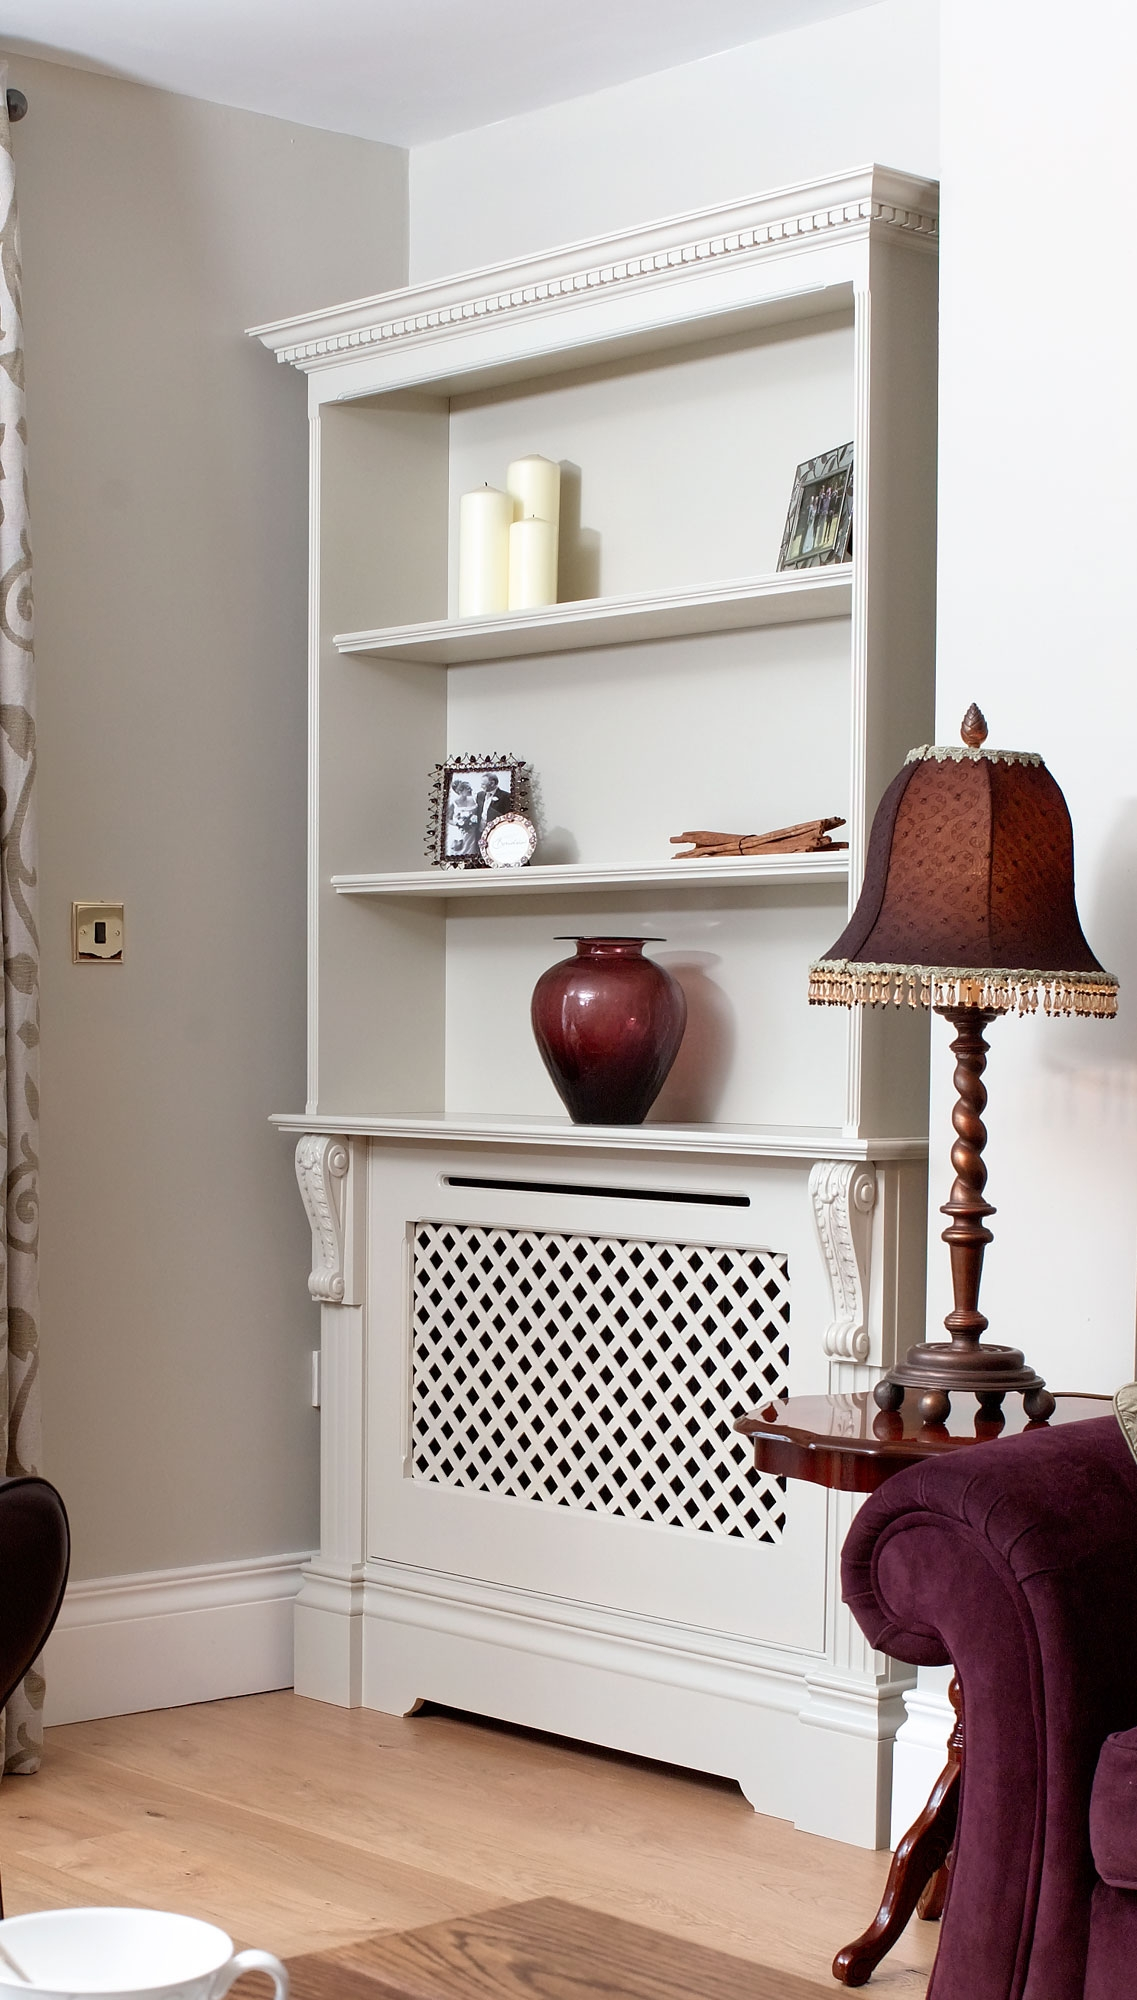 Modern Interior Decorating With Colorful Radiators And Attractive Throughout Radiator Cover Bookshelf (#12 of 15)